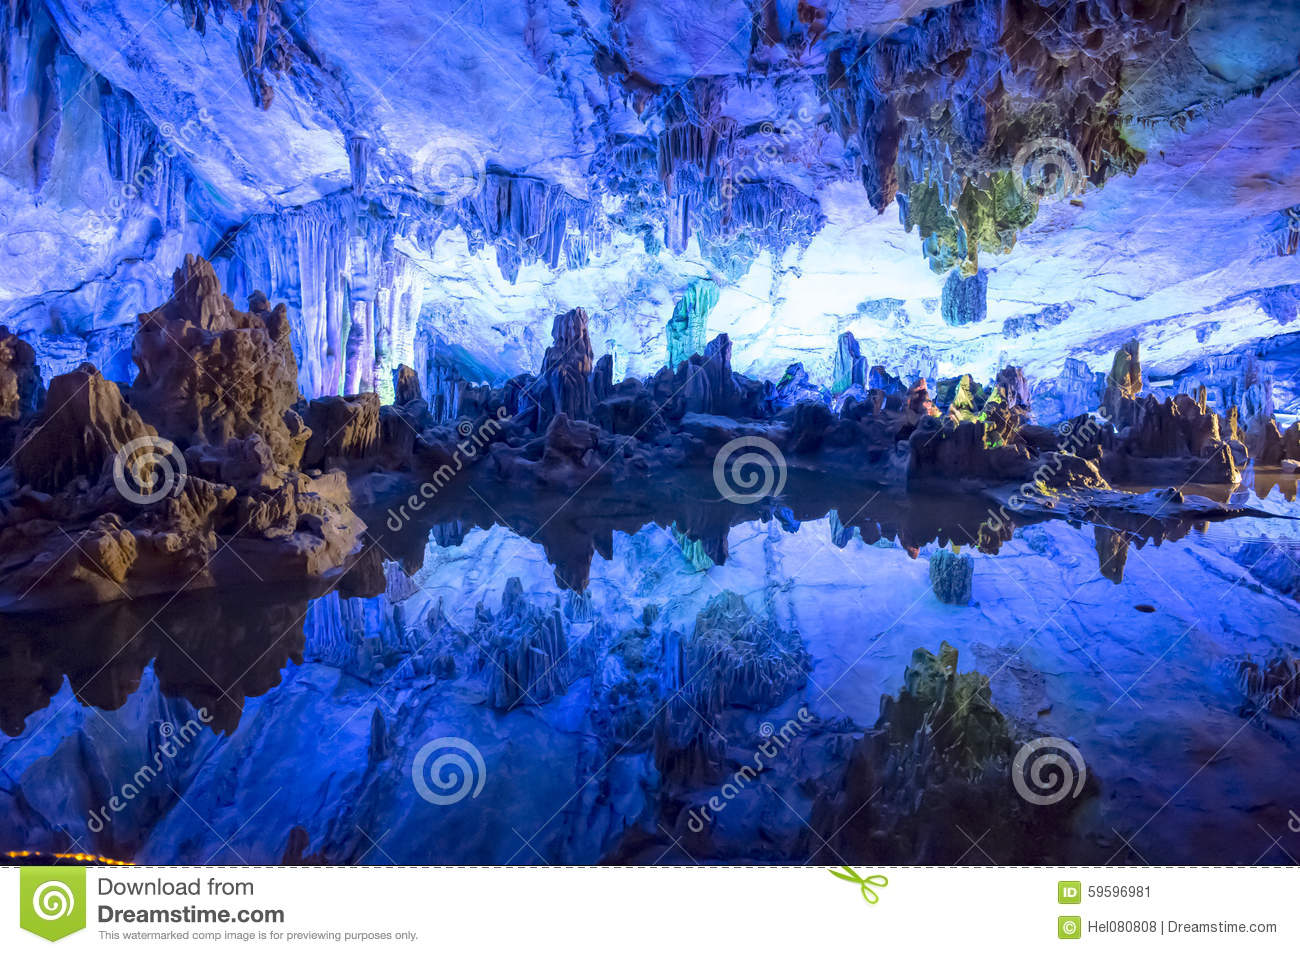 Reed Flute Cave clipart #11, Download drawings